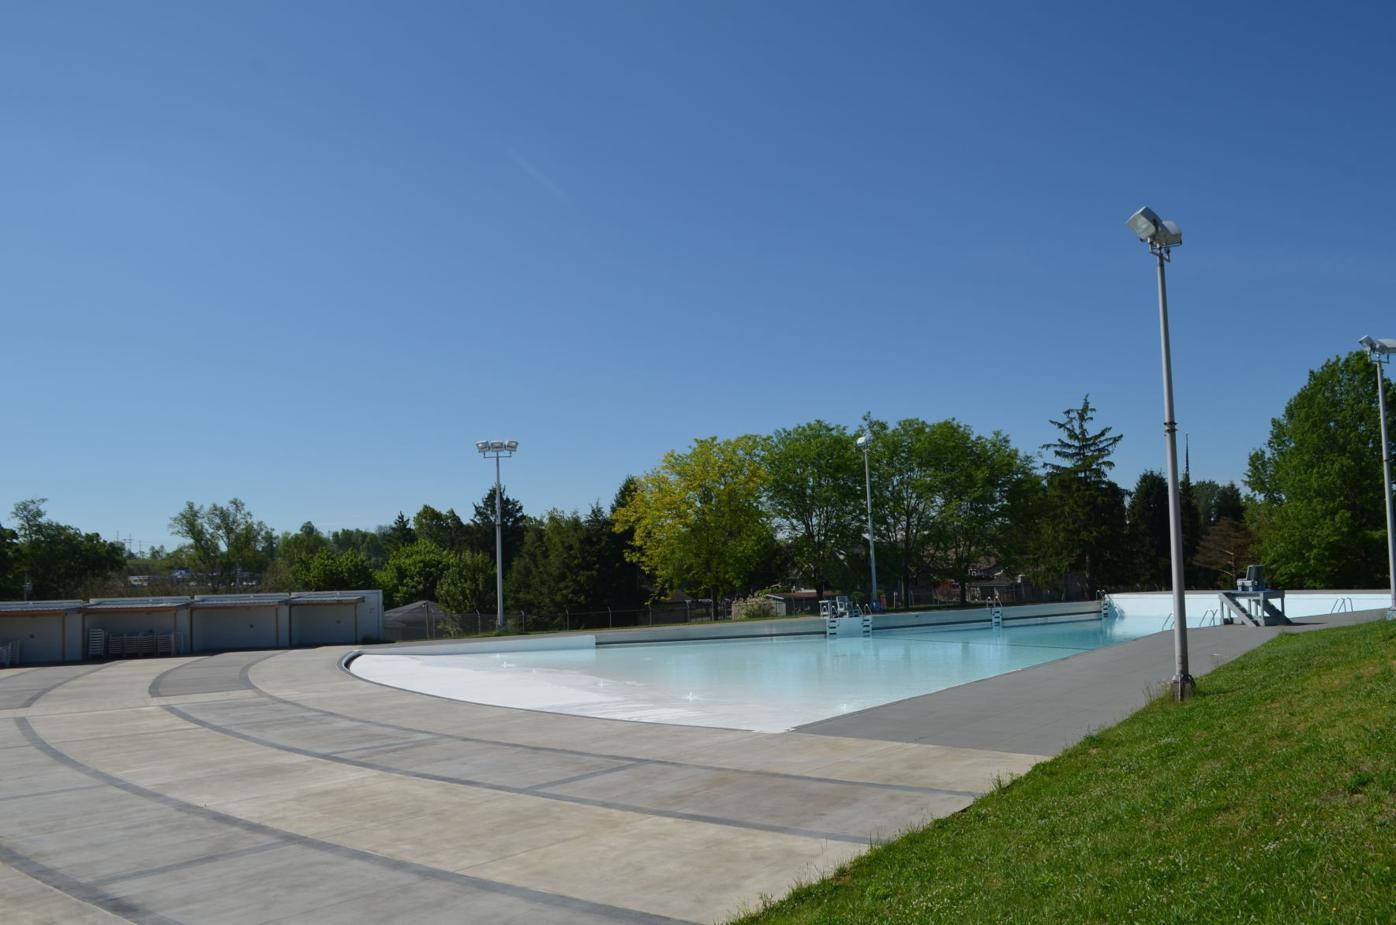 East Marion Park Wave Pool - May 2020